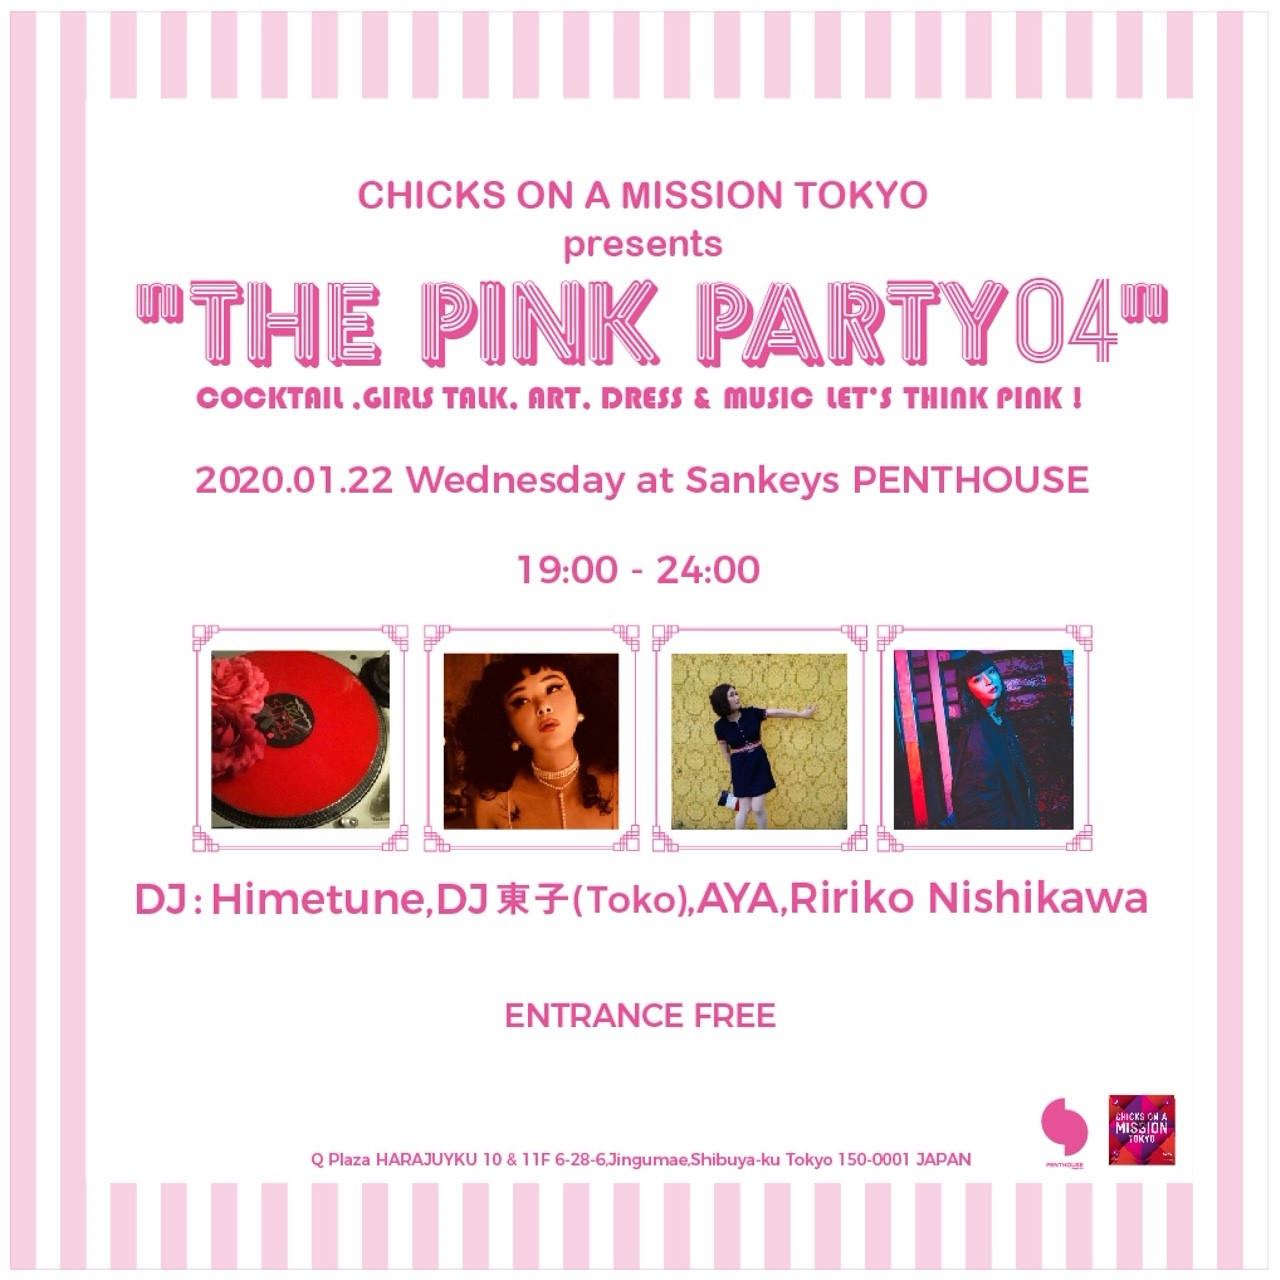 THE PINK PARTY04